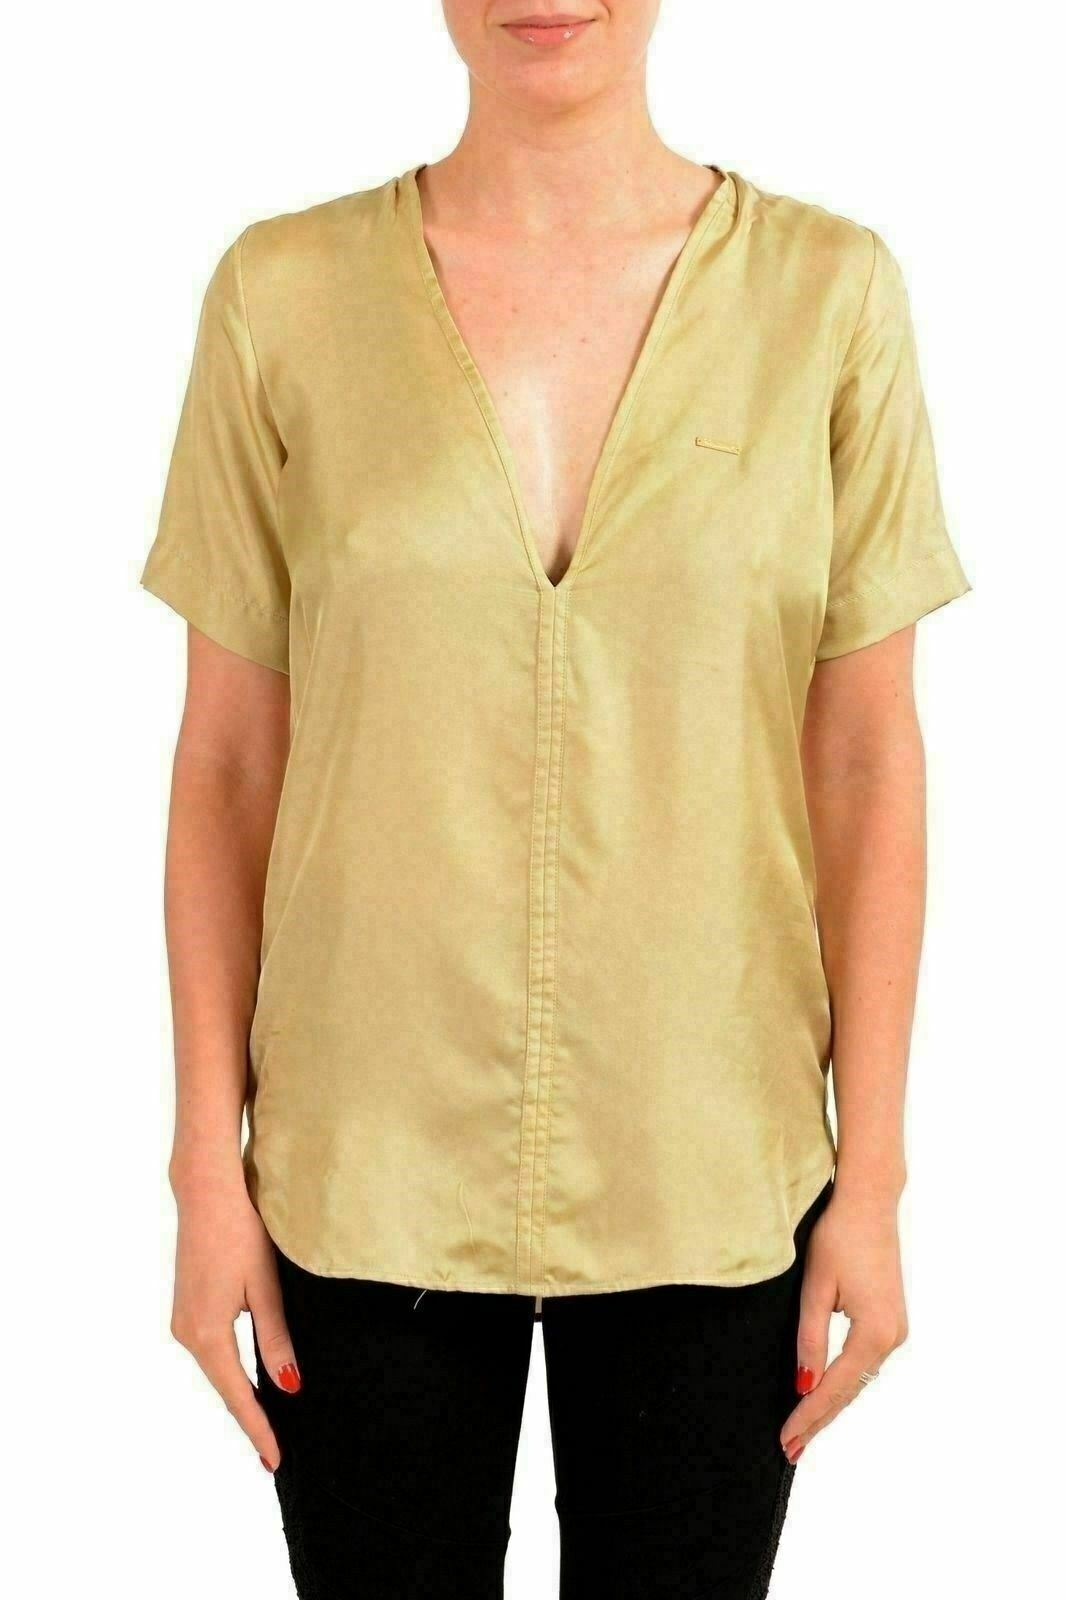 Dsquared2 Women's 100% Silk Beige Short Sleeve Blouse Top US S IT 40